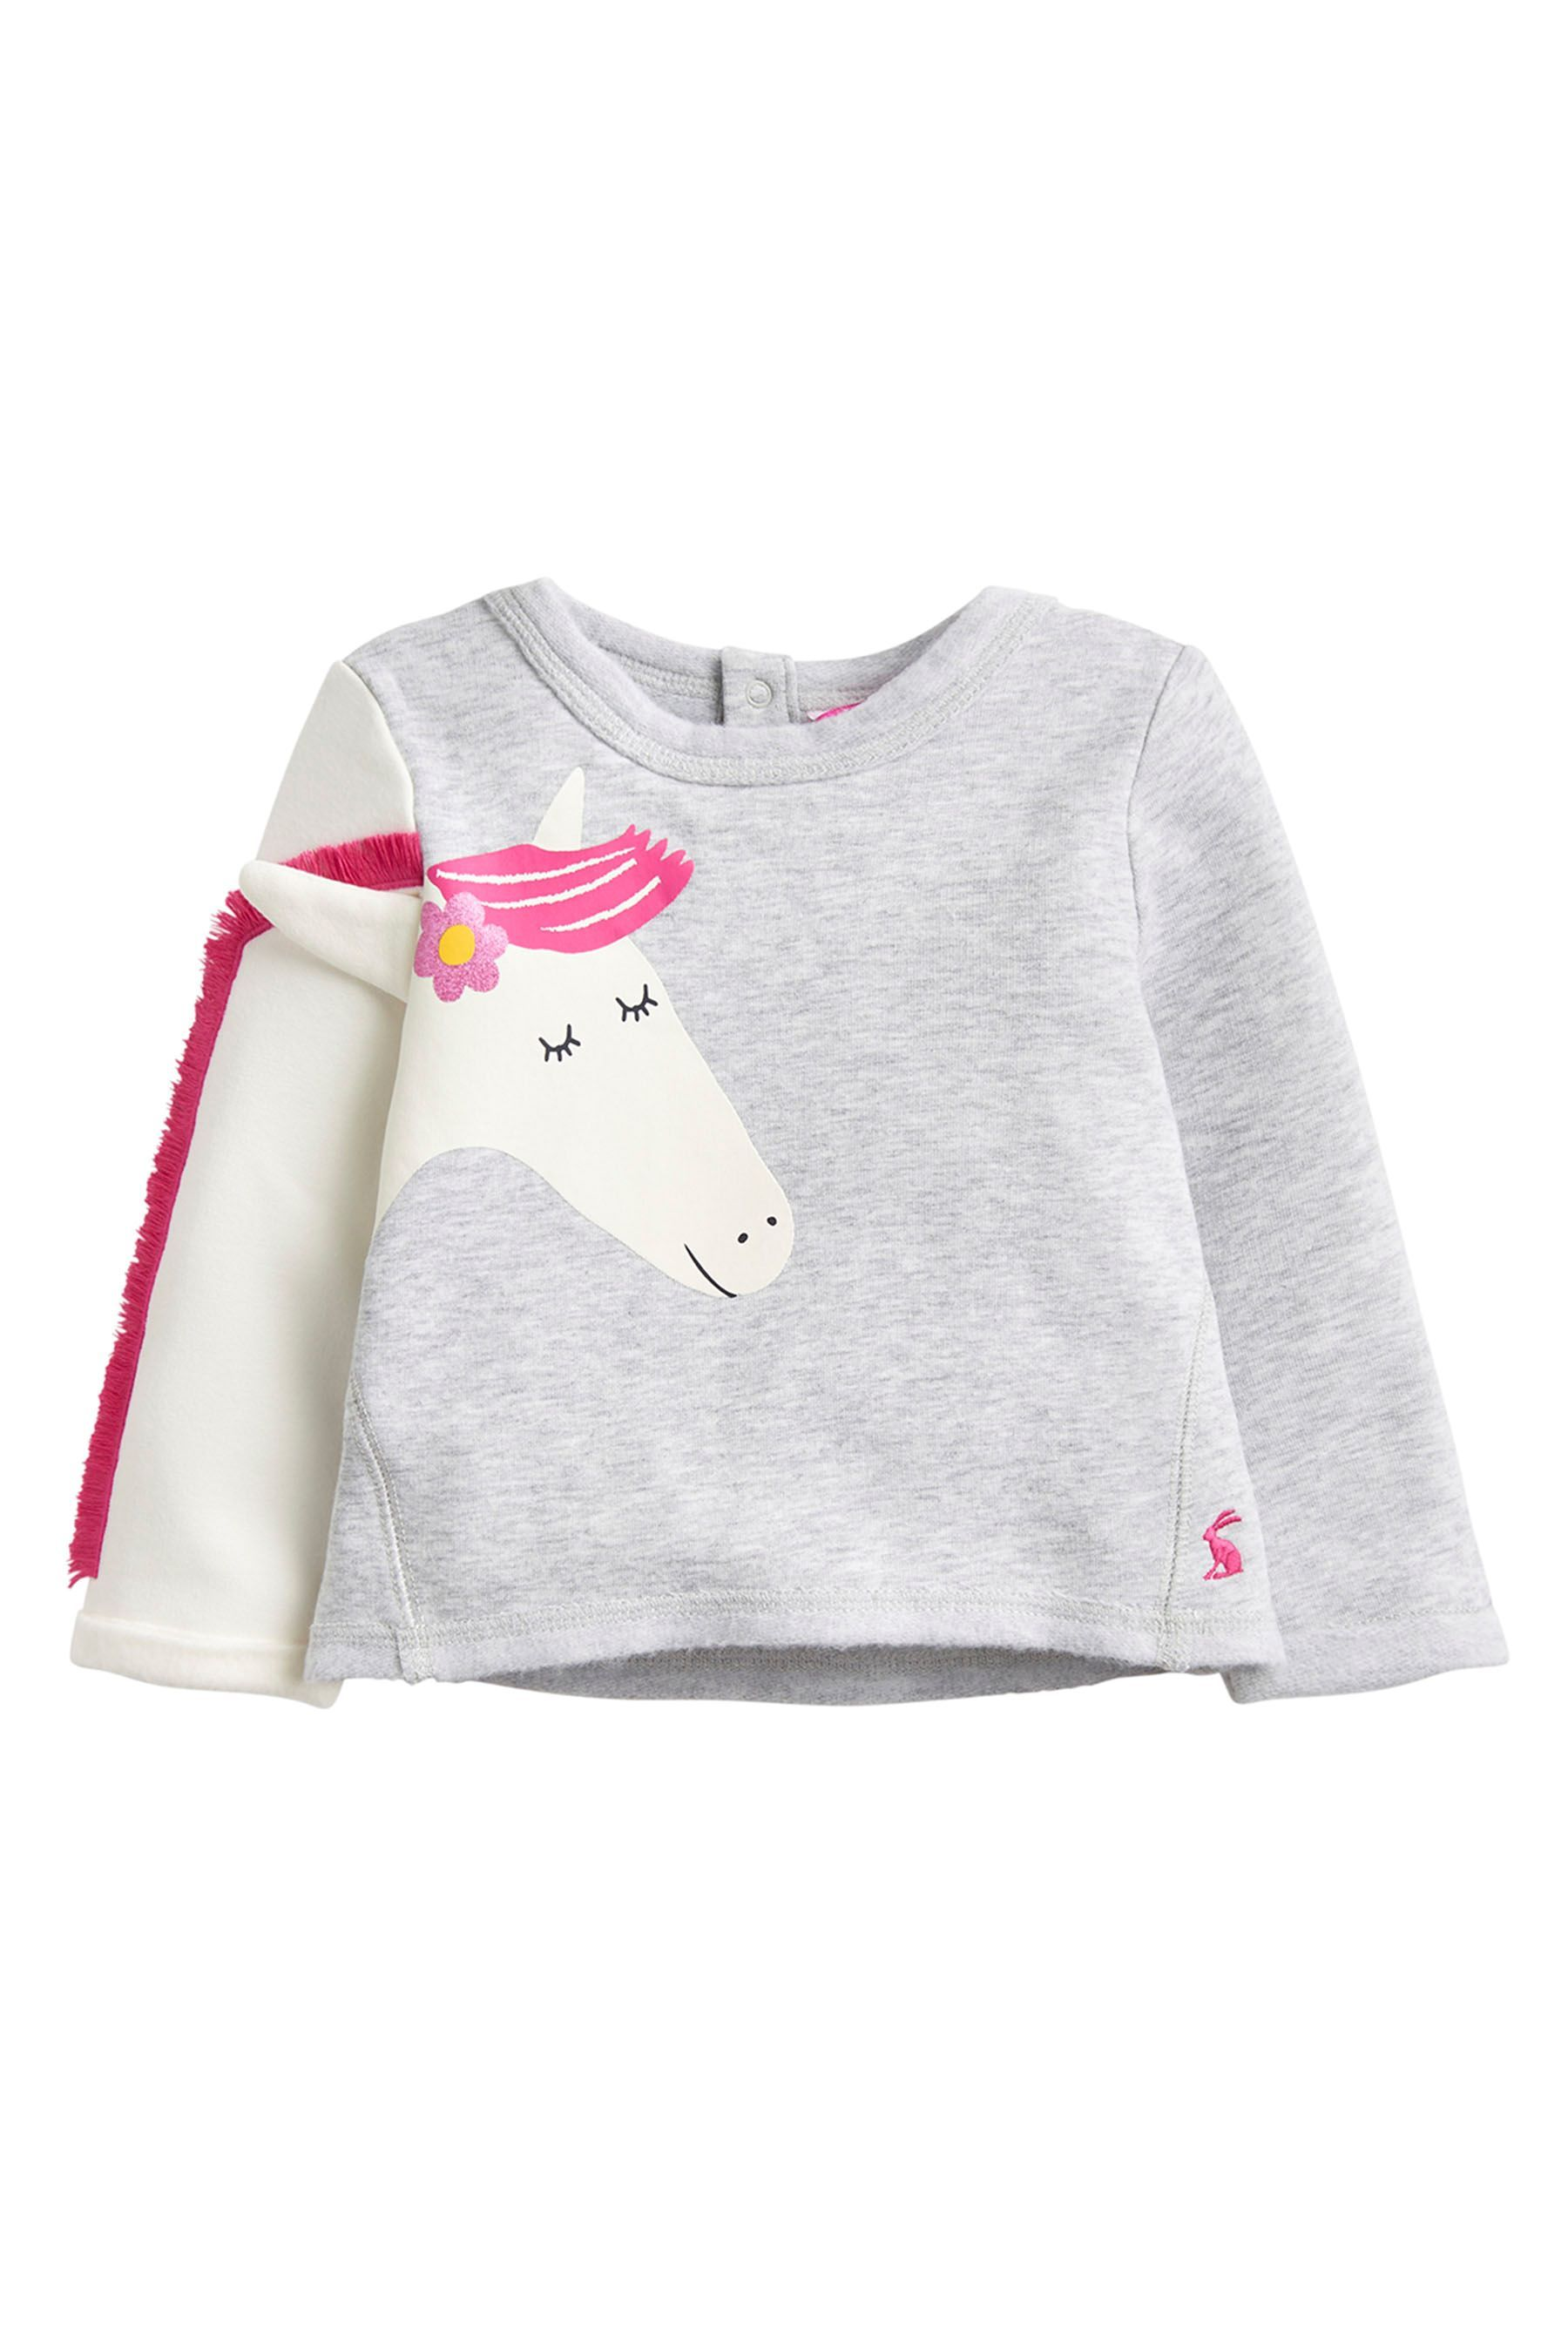 Buy Joules Grey Baby Dash Novelty Sweatshirt from the Next